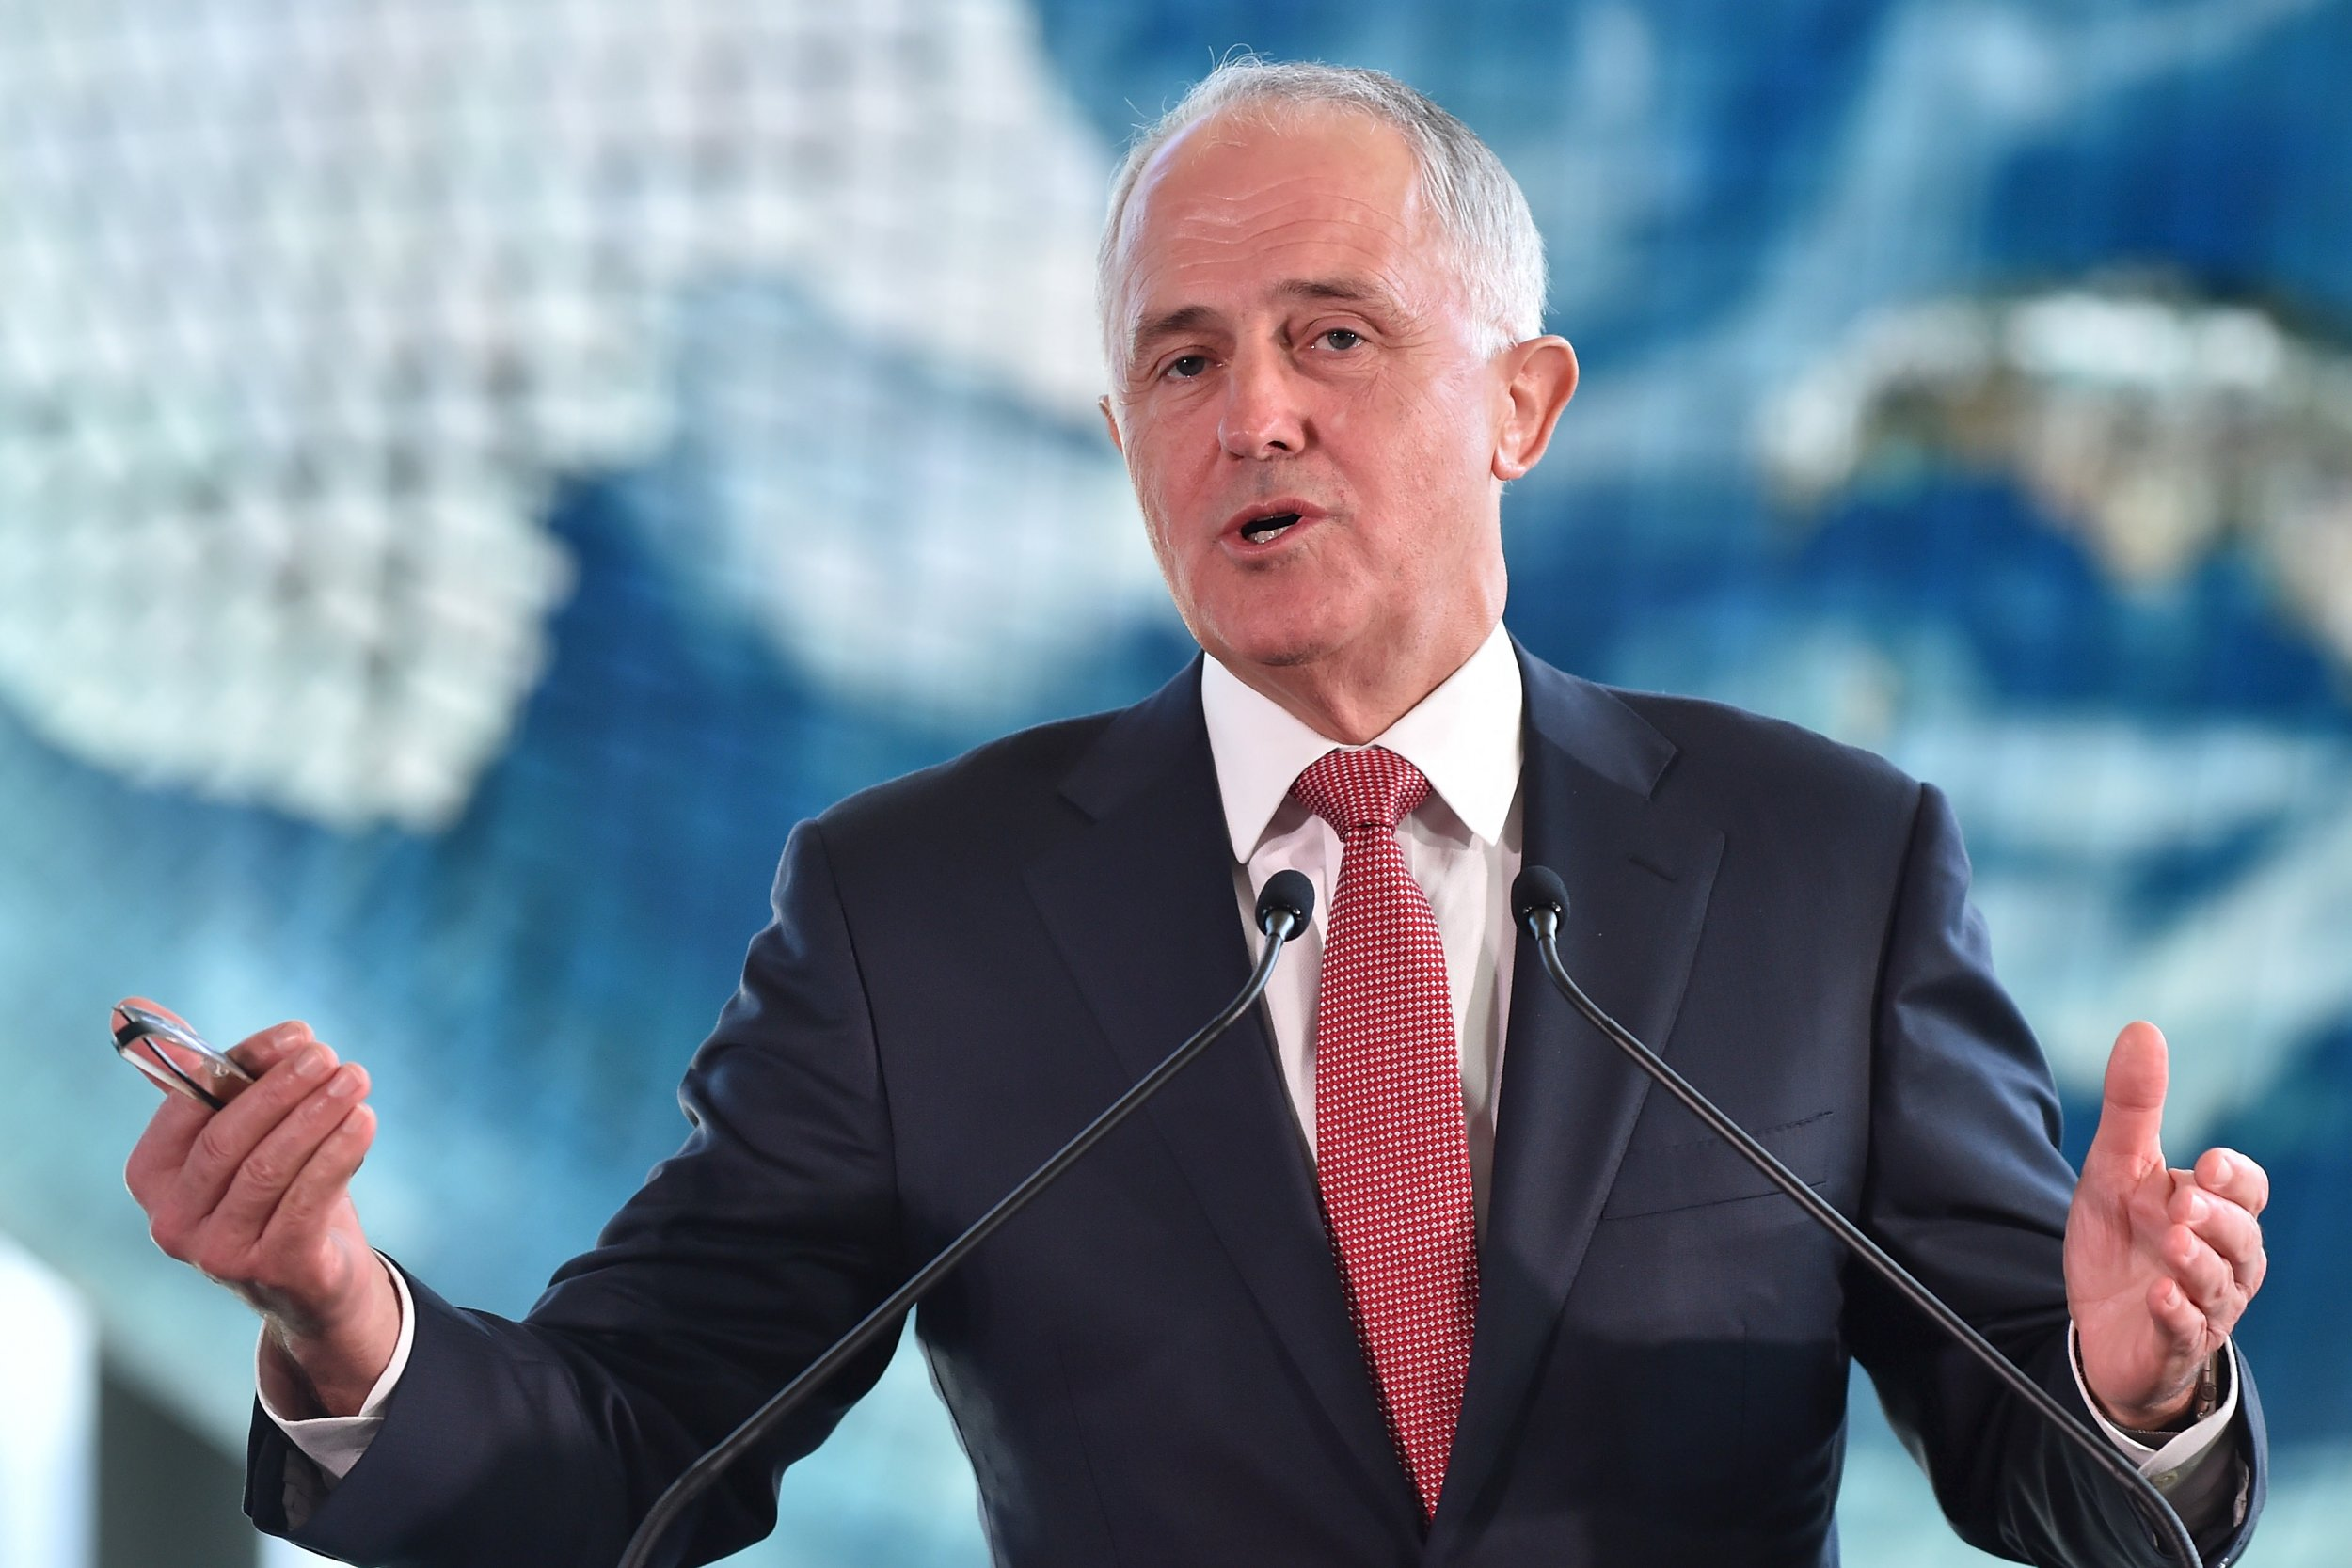 Australian Prime Minister Malcolm Turnbull has defended the policy of detaining asylum seekers offshore.